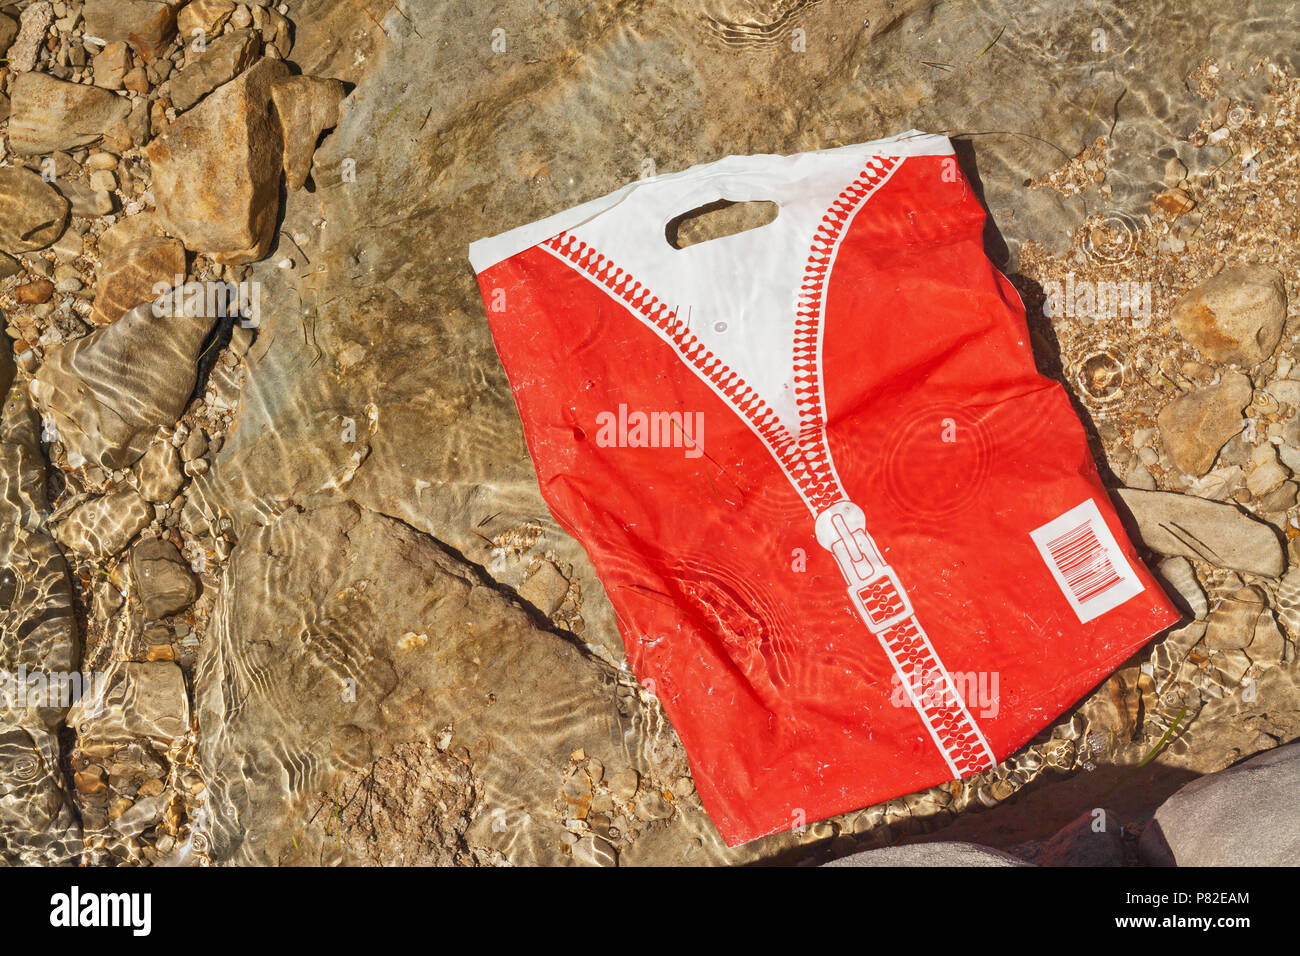 Waste plastic bag floating in clean water close to coast. - Stock Image